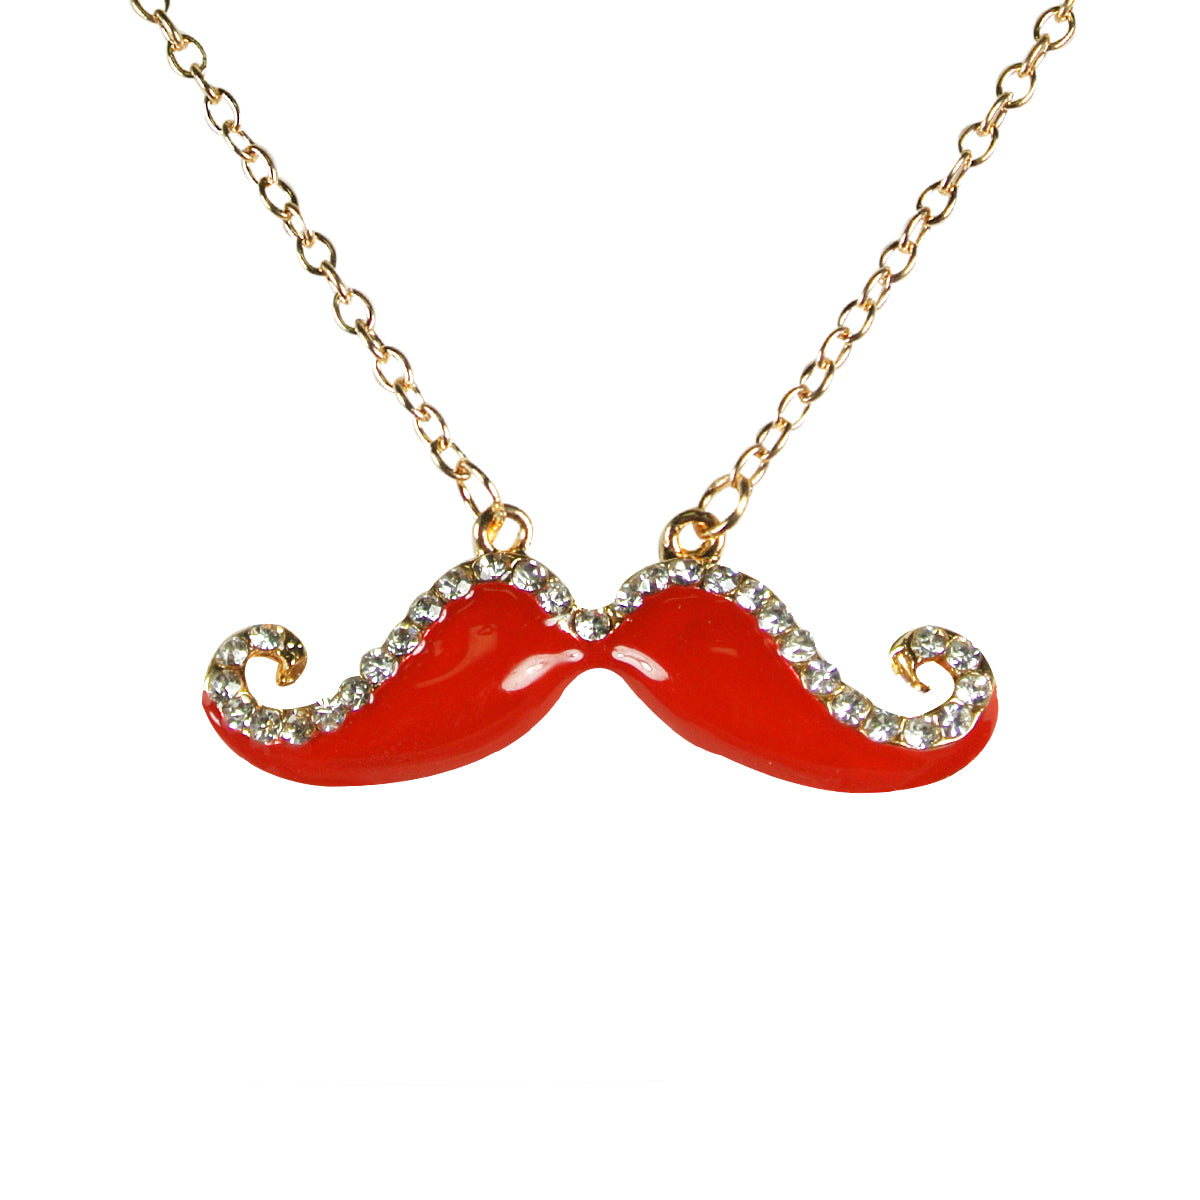 Red Handlebar Mustache Necklace with Crystals